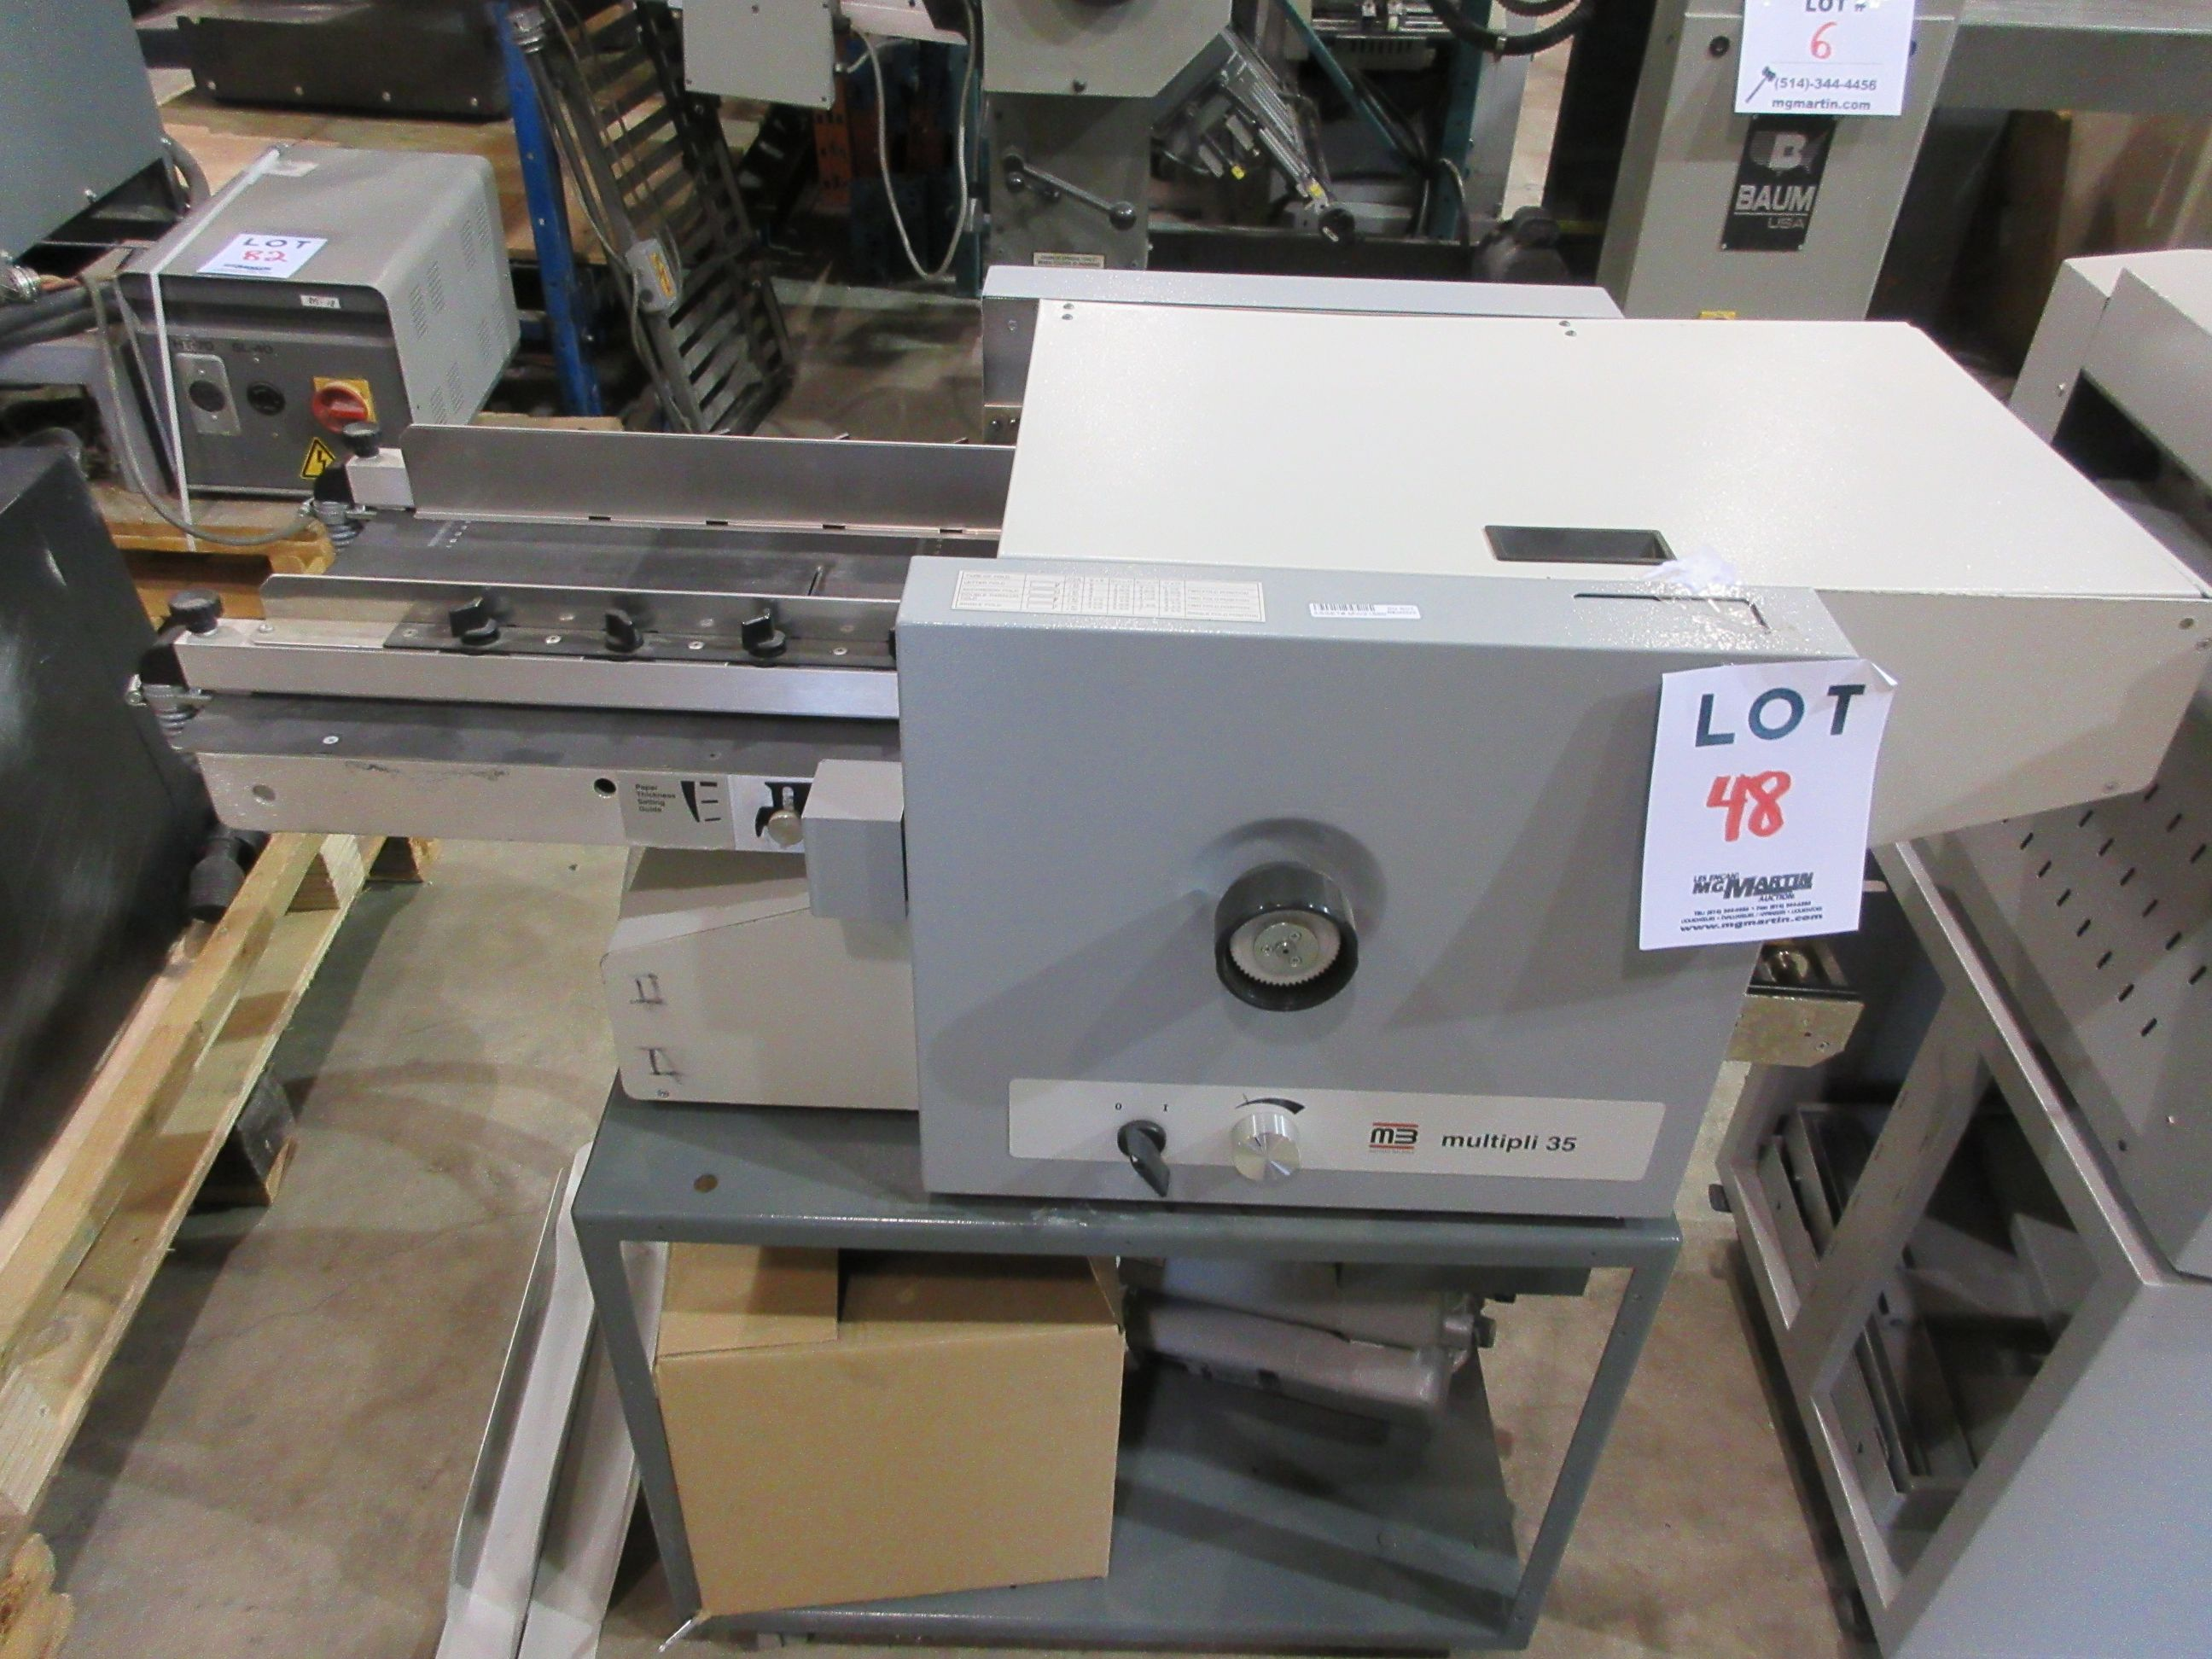 MB folding machine (mod: multipli 35)